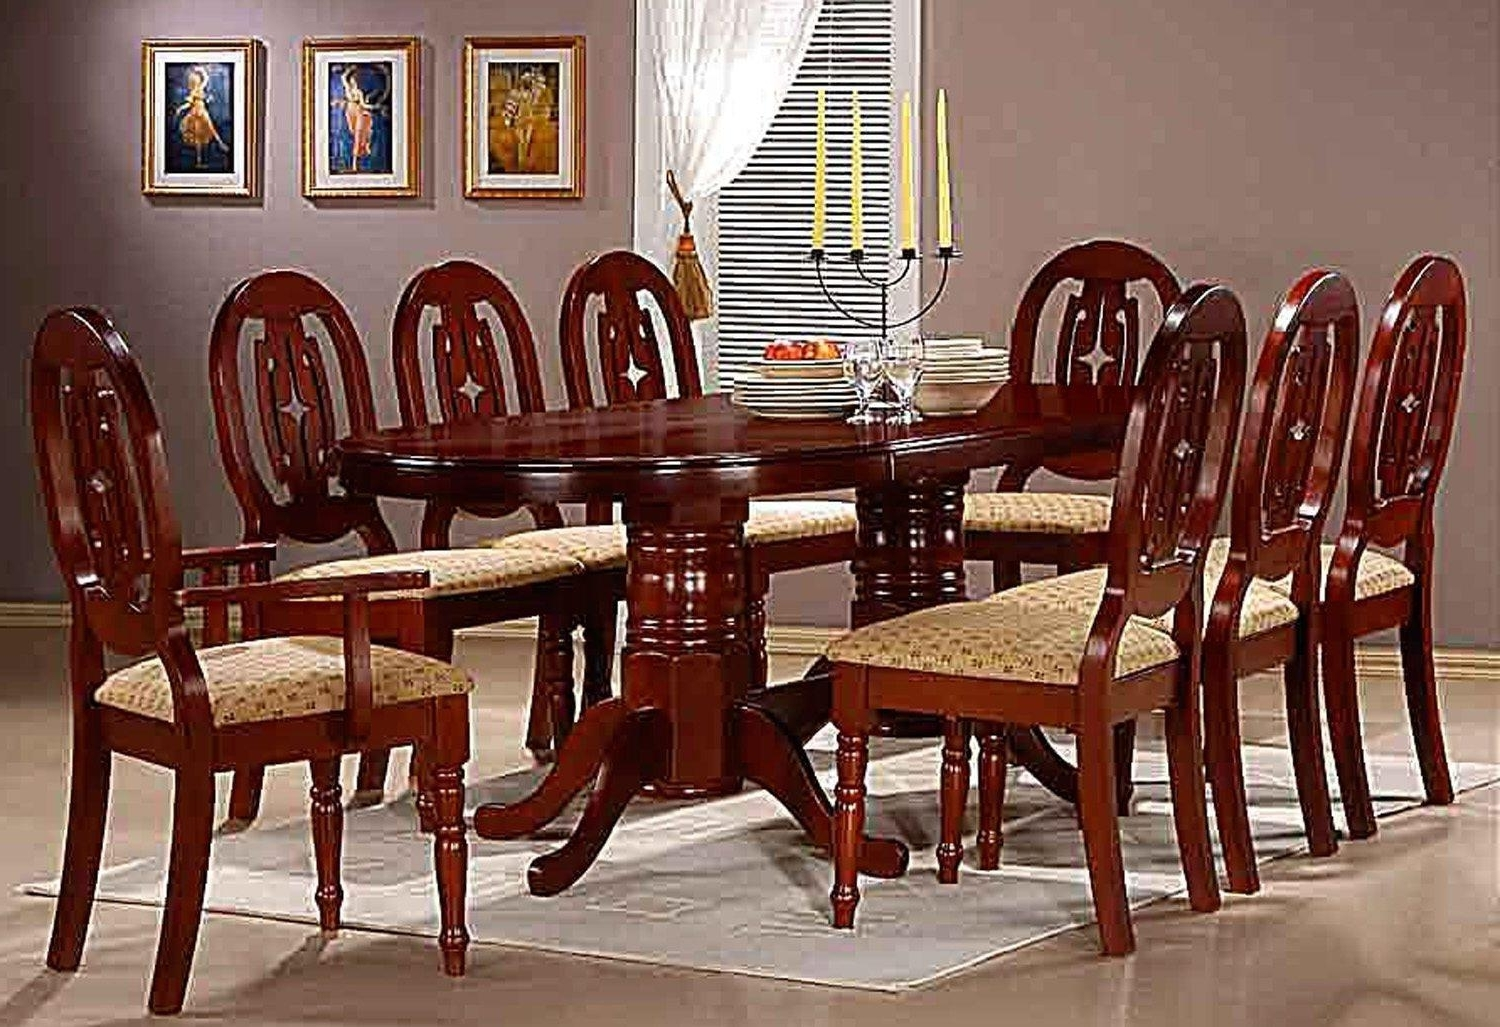 8 Seater Dining Table Sets For Most Current Wooden 8 Seater Dinning Table Set Glow Finish With Chairs (View 3 of 25)